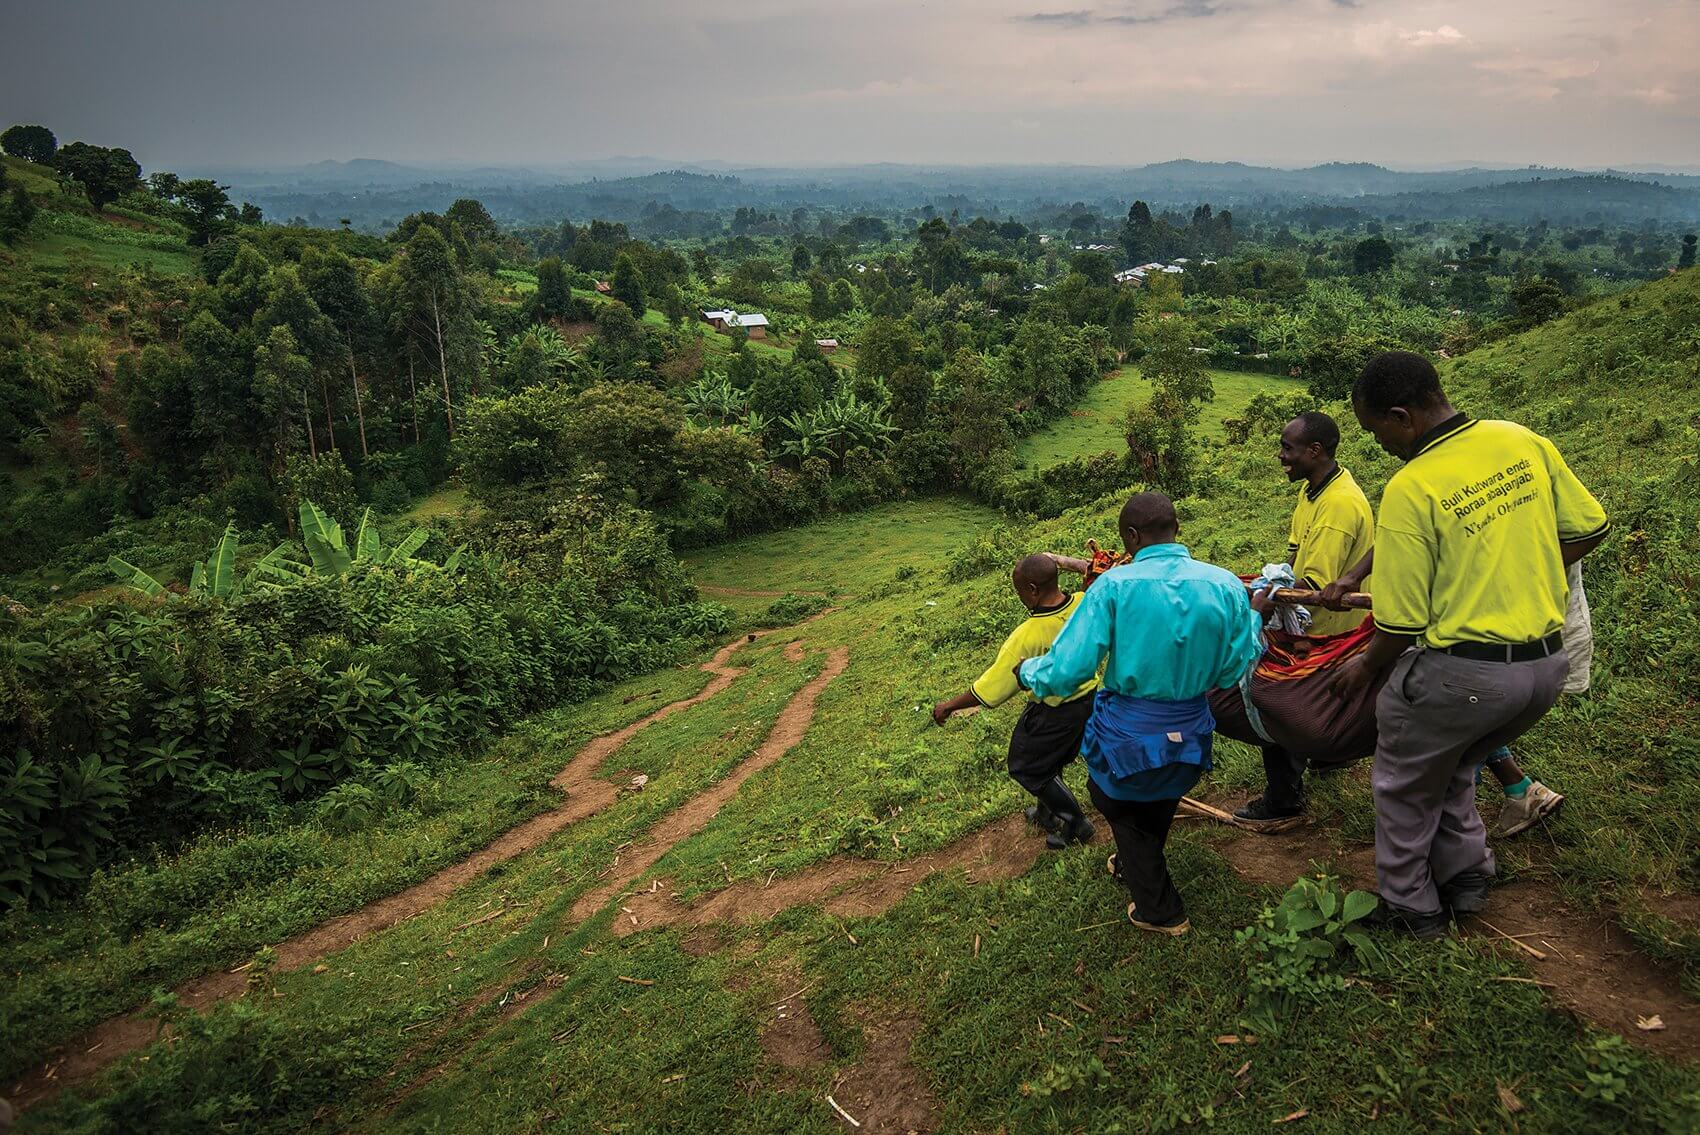 After going into labor, a young mother is carried down from her mountaintop village in Uganda to a hospital—a trip that lasts just 30 minutes. The Baylor International Pediatric AIDS Initiative has been working in Uganda to reduce the maternal and infant mortality rate. (Credit: Smiley Pool)